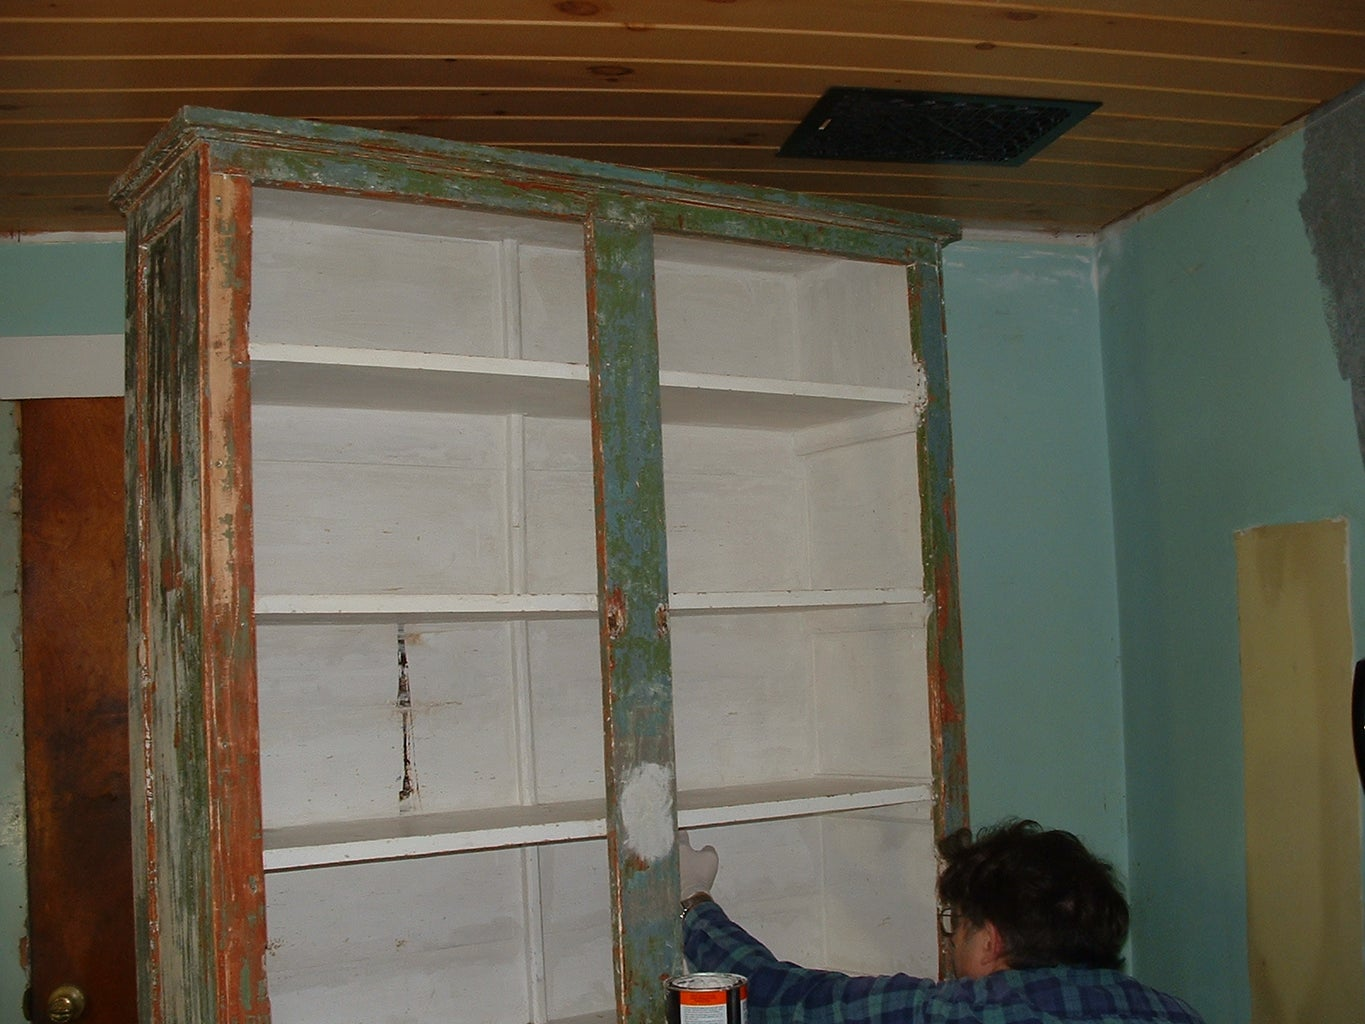 Sealing the Upper Section